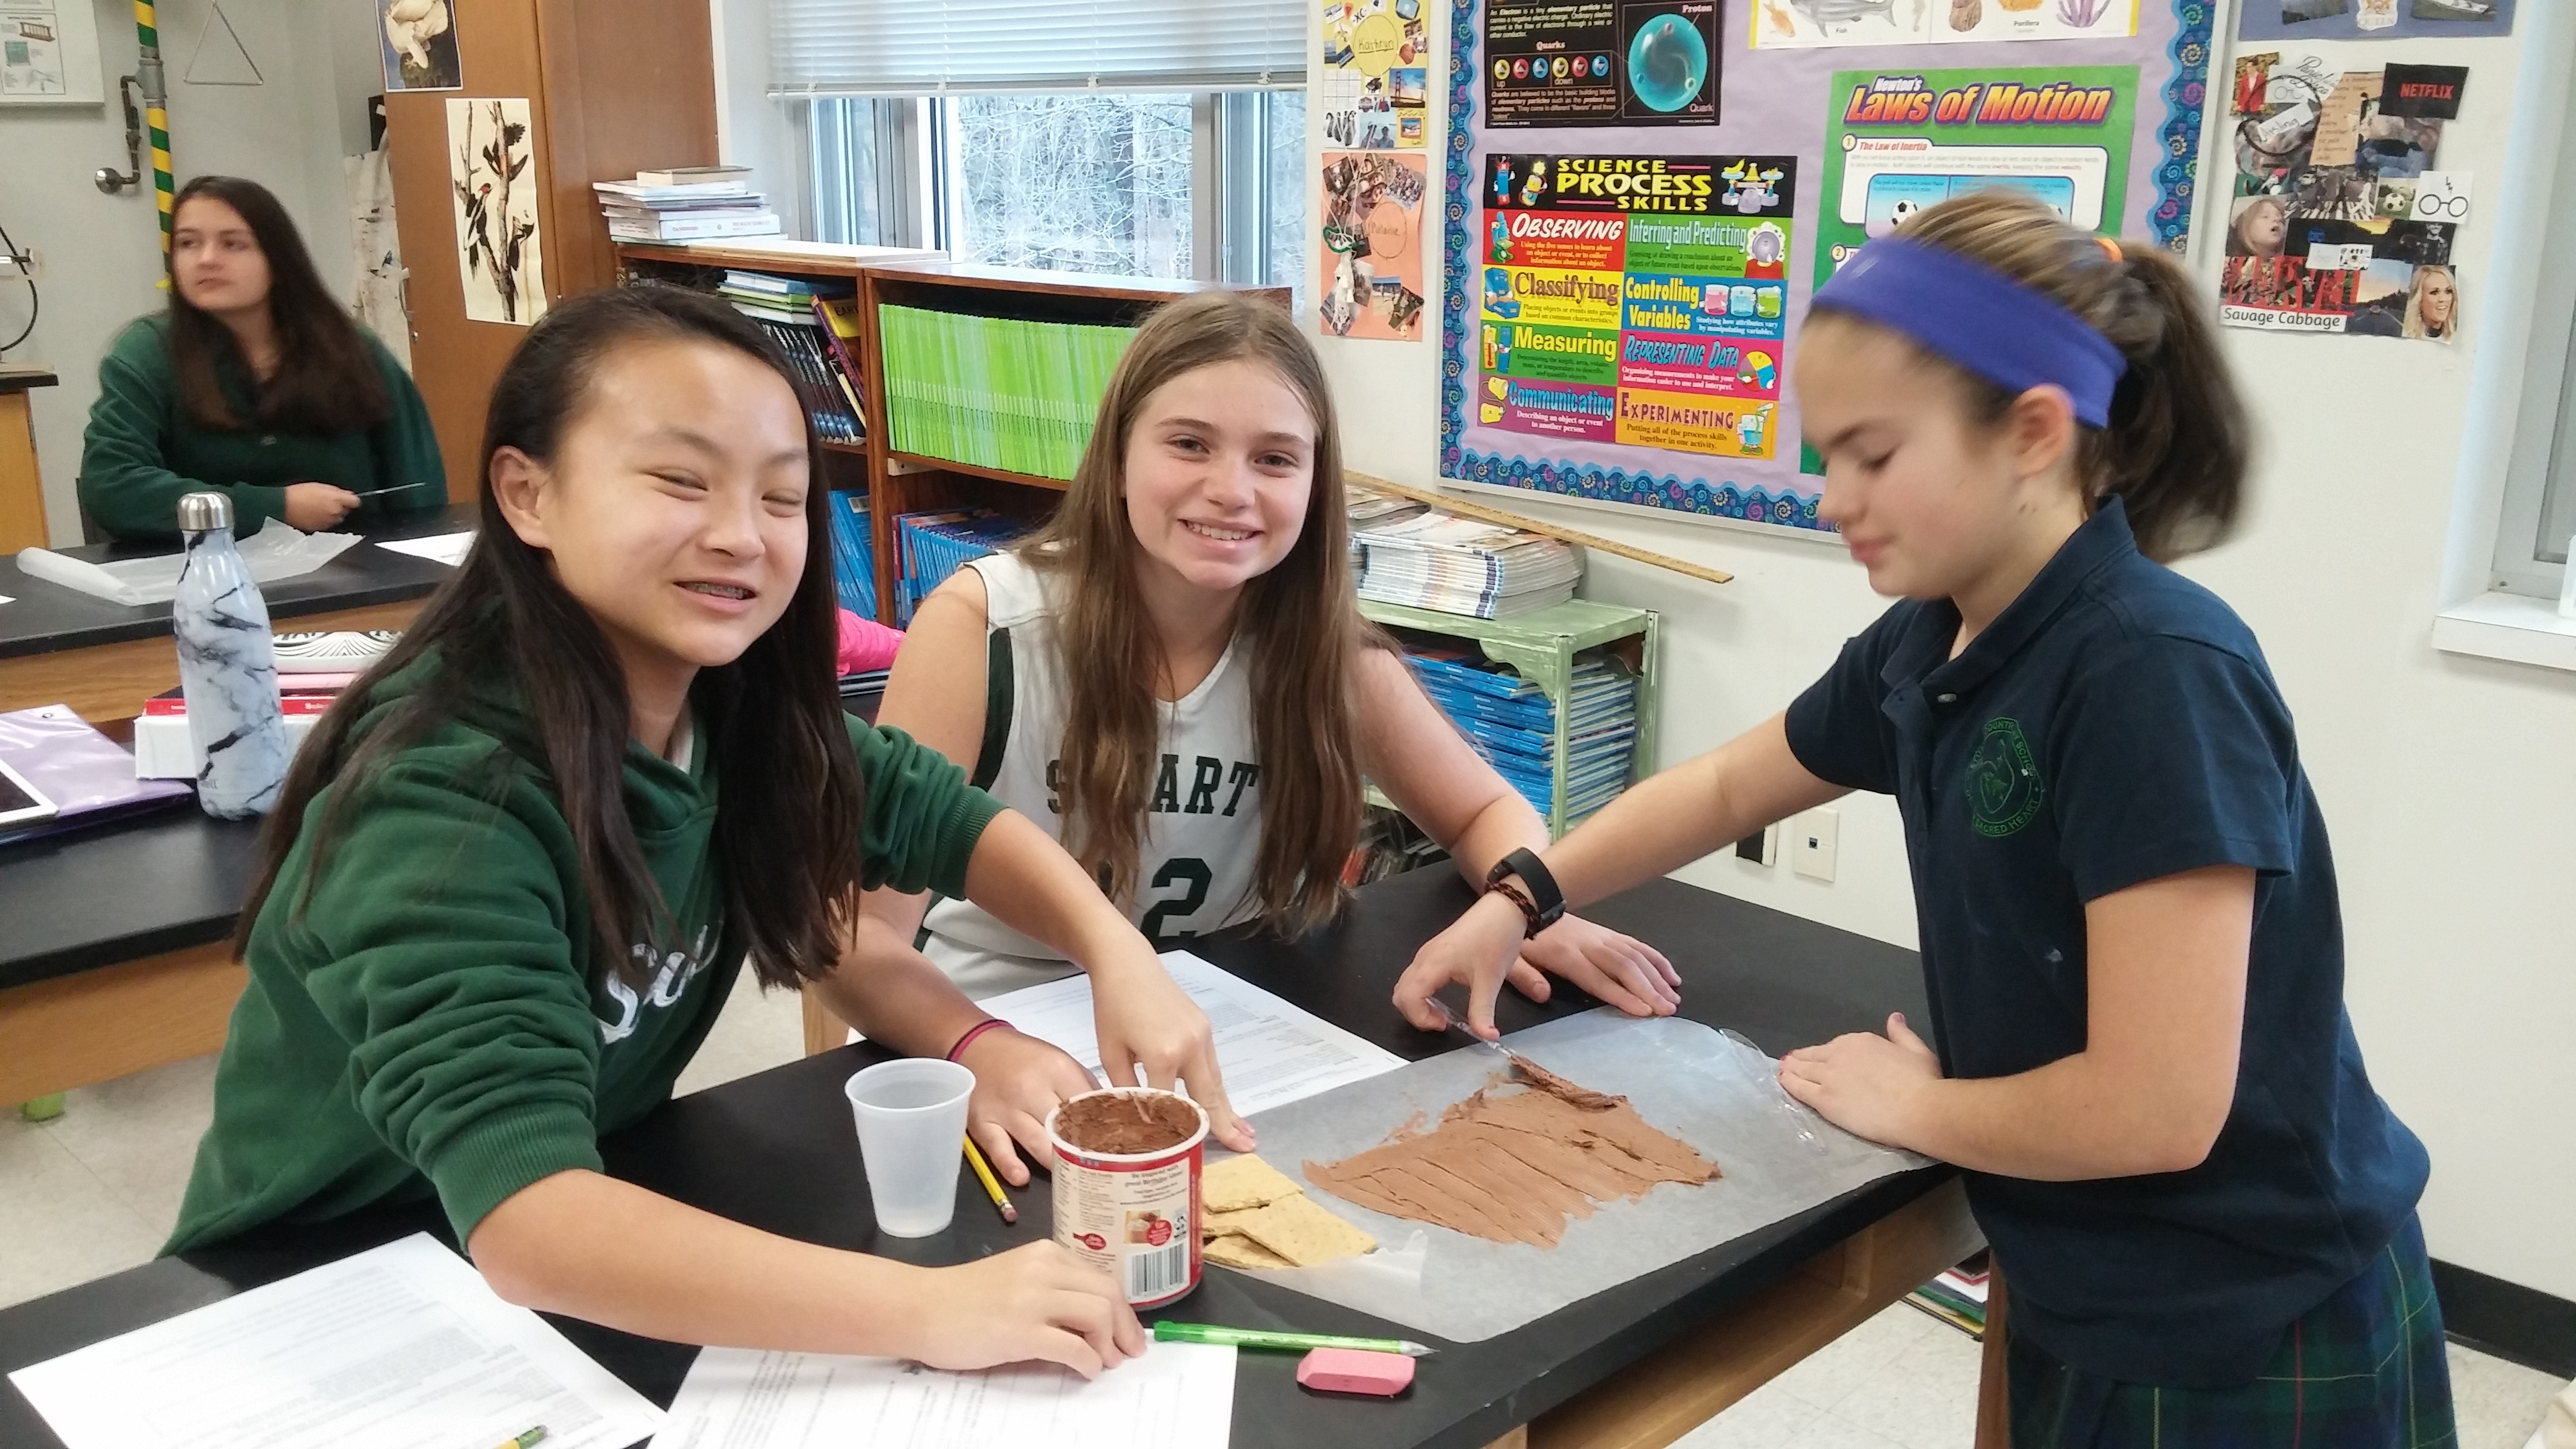 science middle students plate tectonics way tasty discover stuart country surface plates